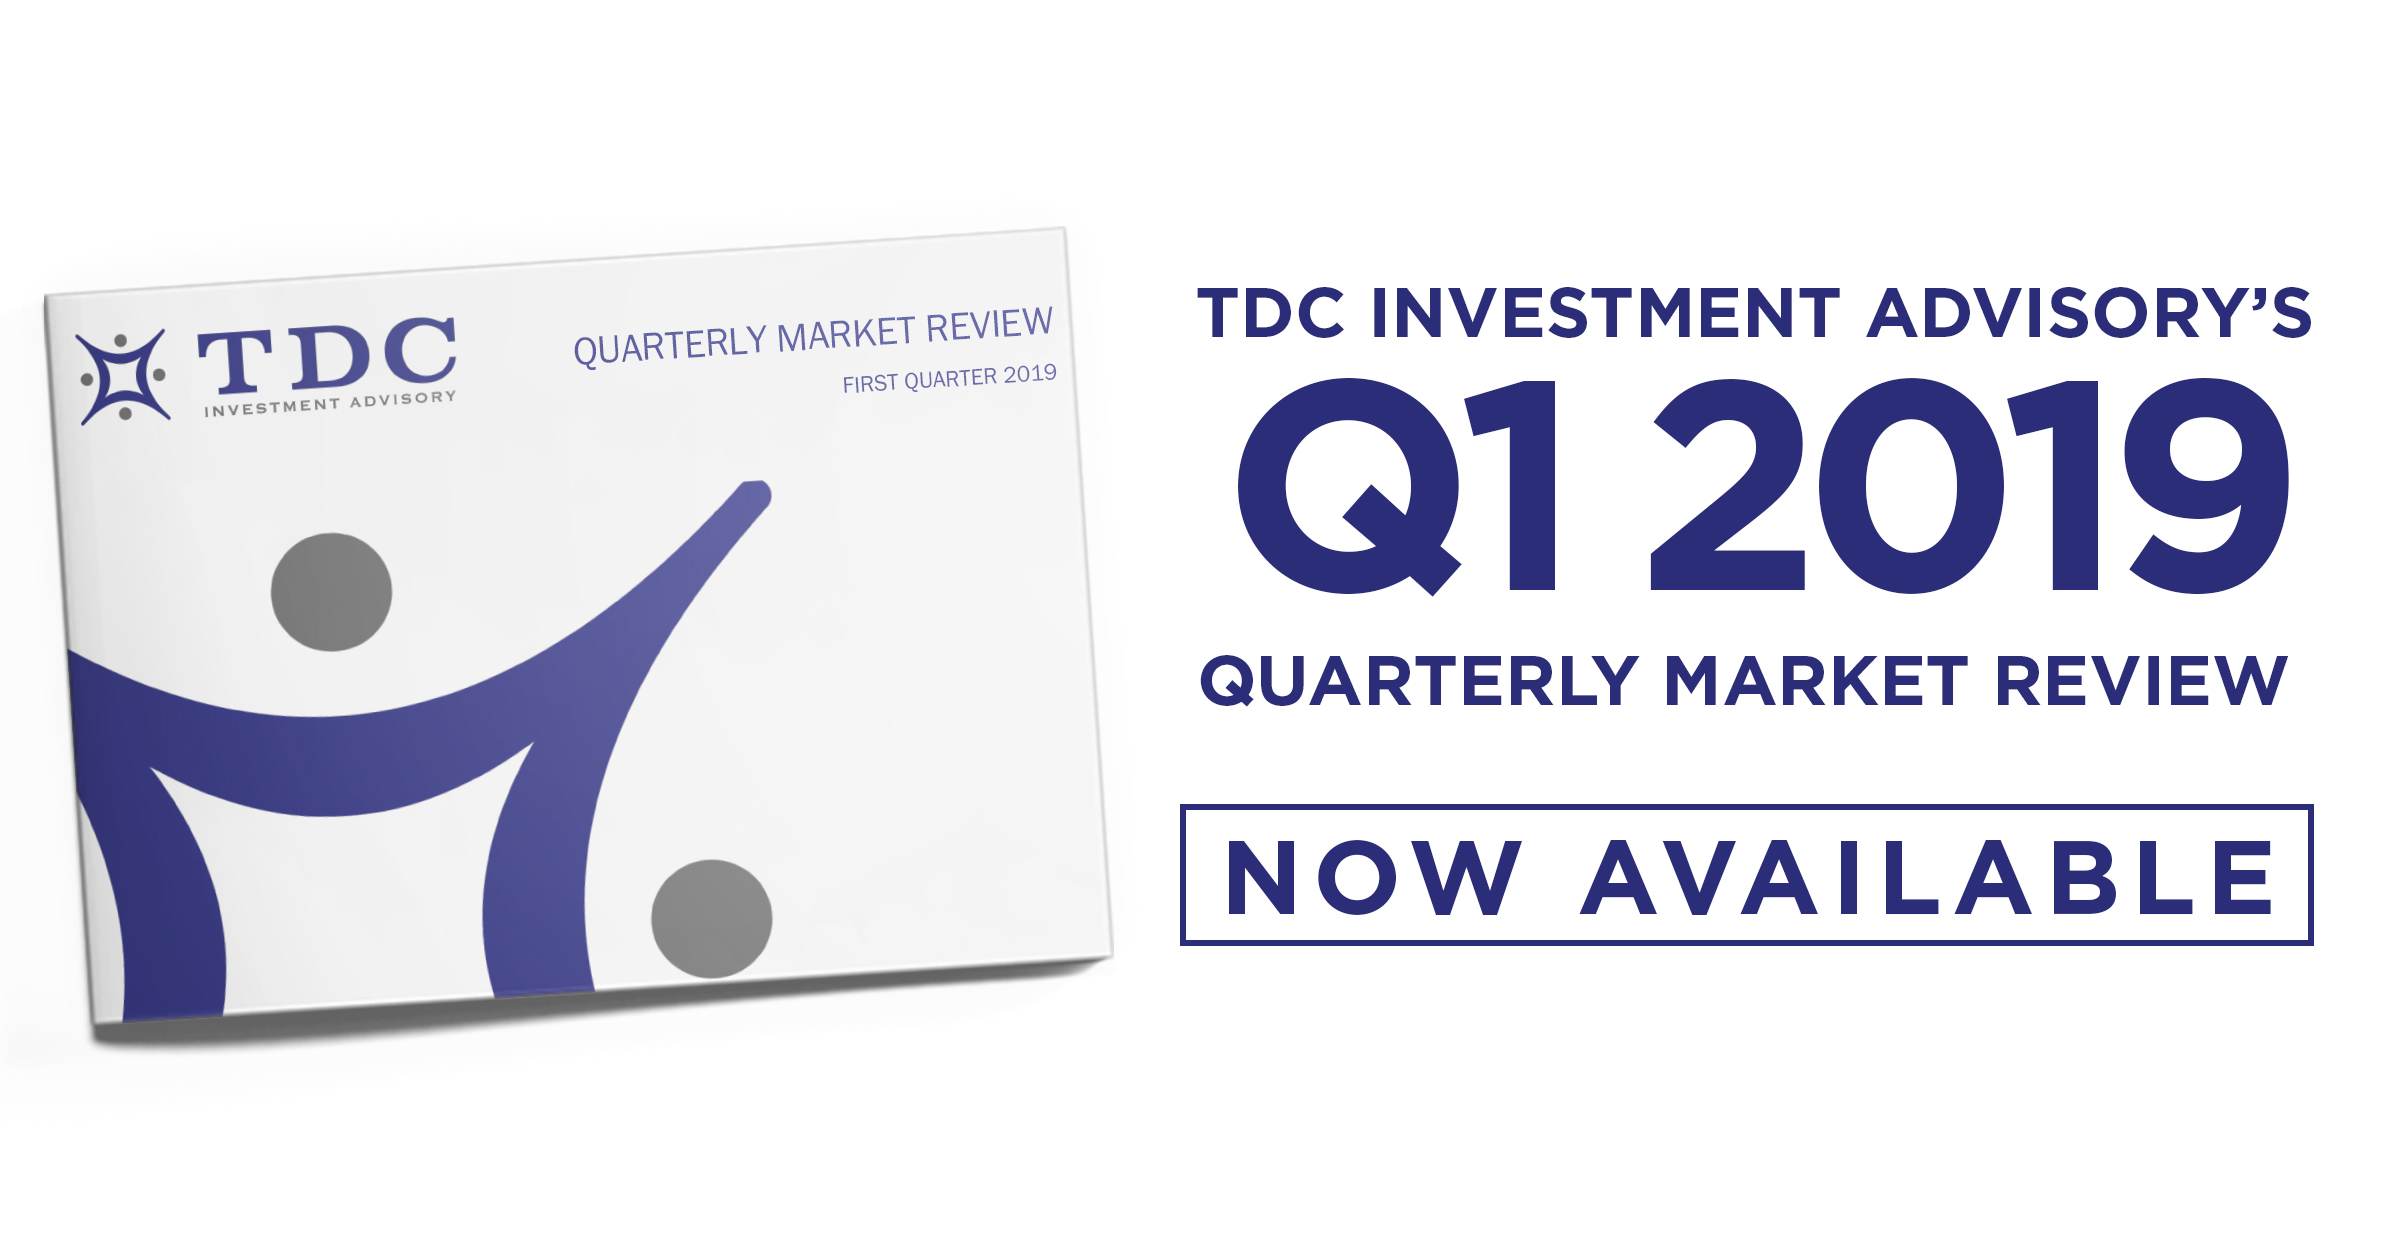 TDC's Quarterly Market Review for Q1 2019 is Now Available